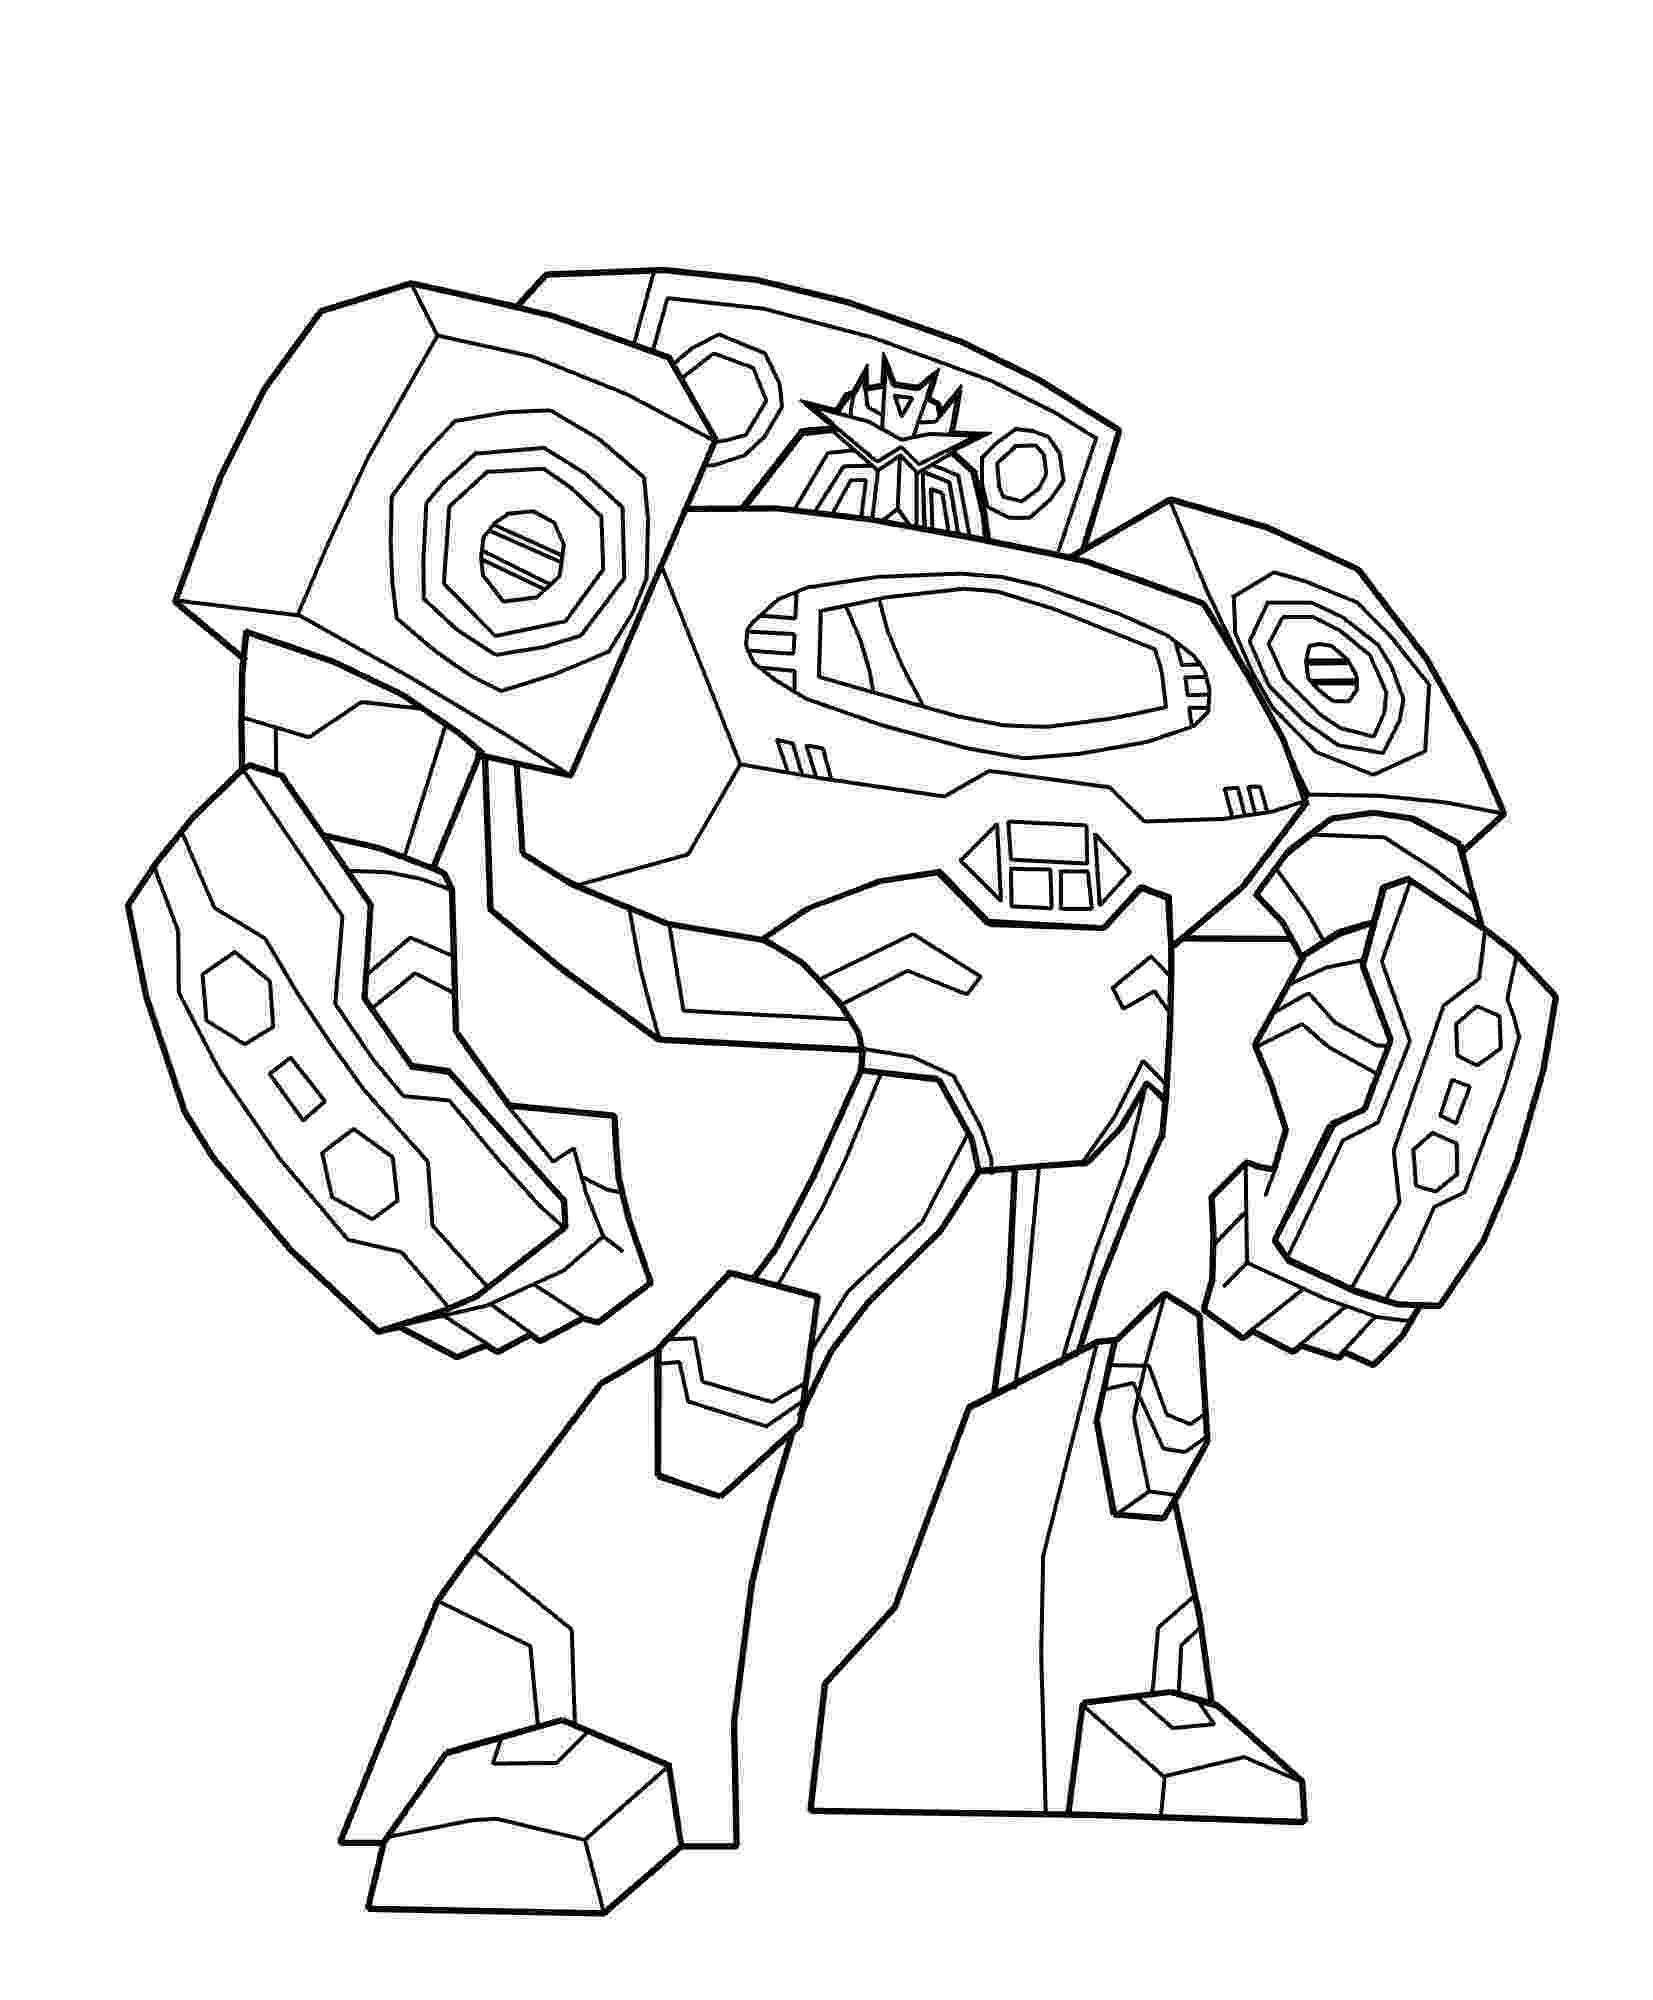 transformer coloring pages free ausmalbilder für kinder malvorlagen und malbuch transformer coloring pages free